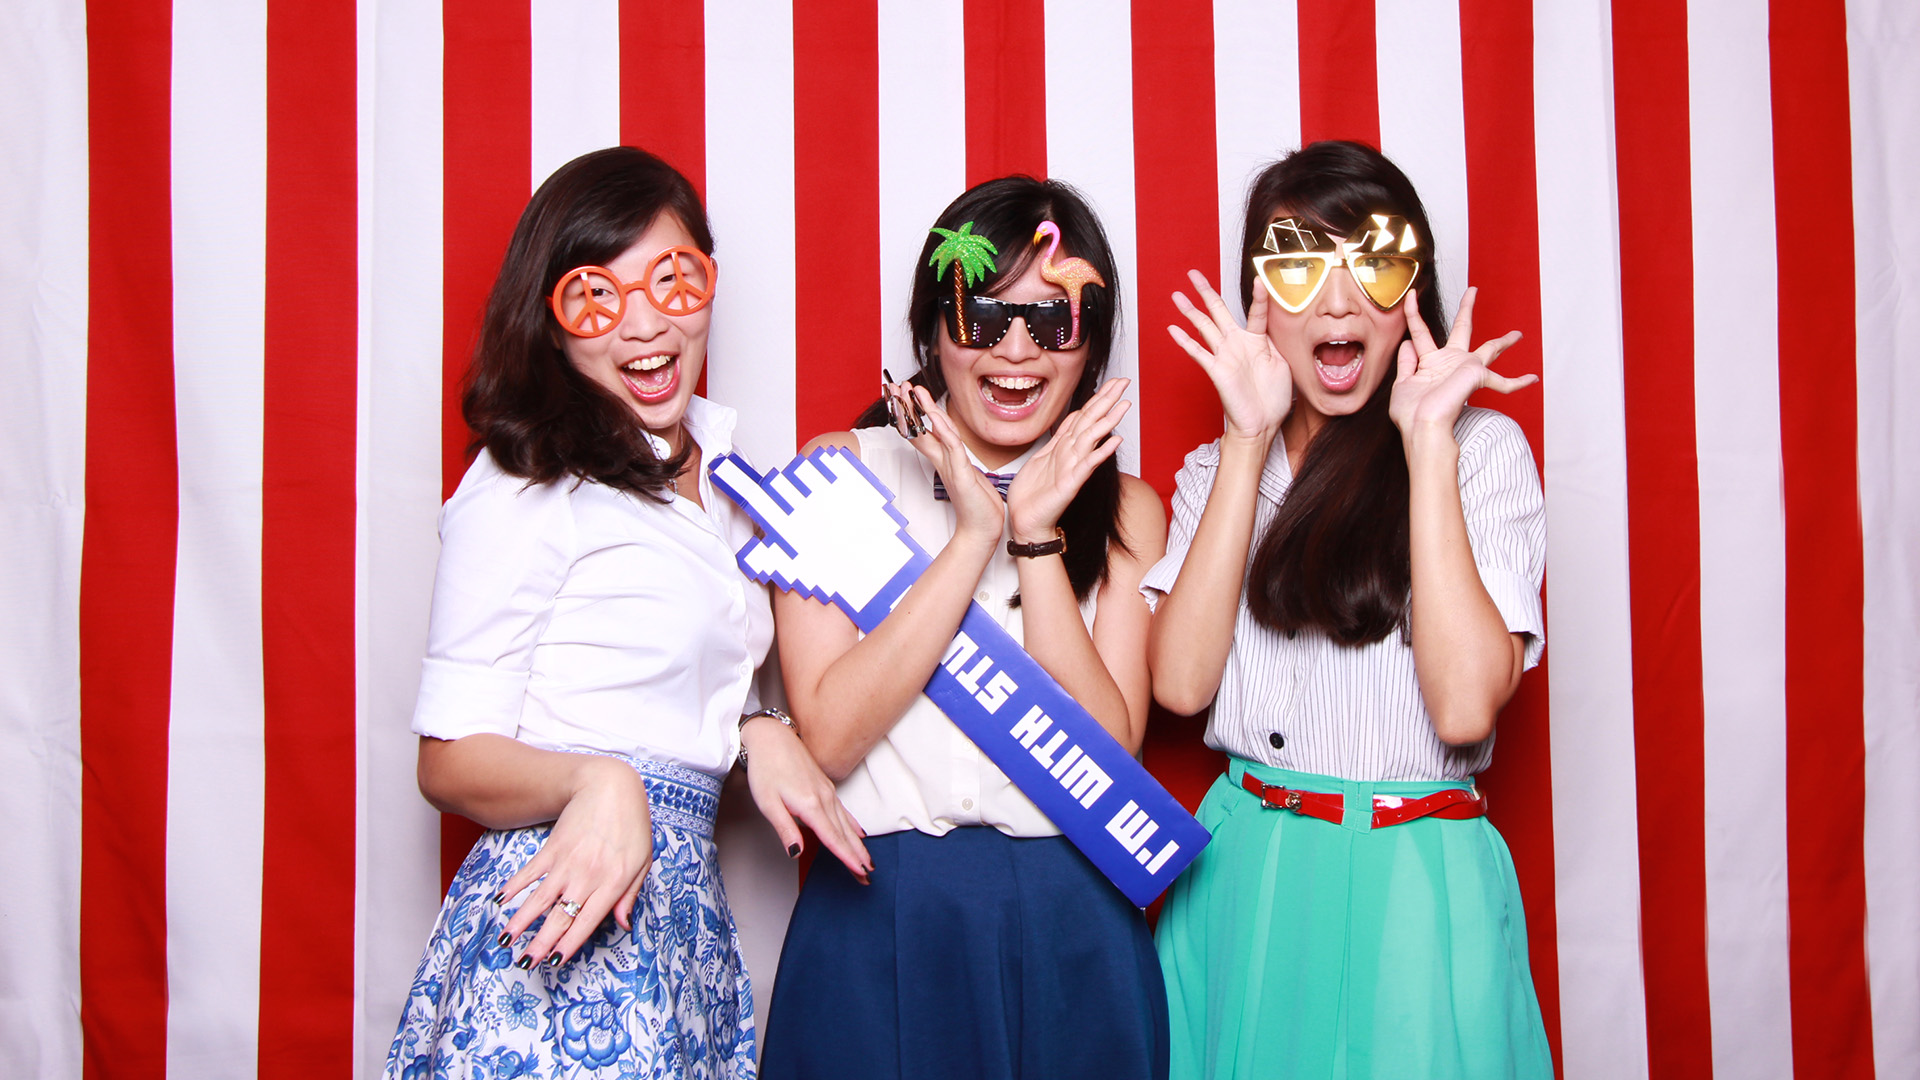 Fourstops • Singapore Photobooth • AGD Dinner & Dance 2015 Photobooth